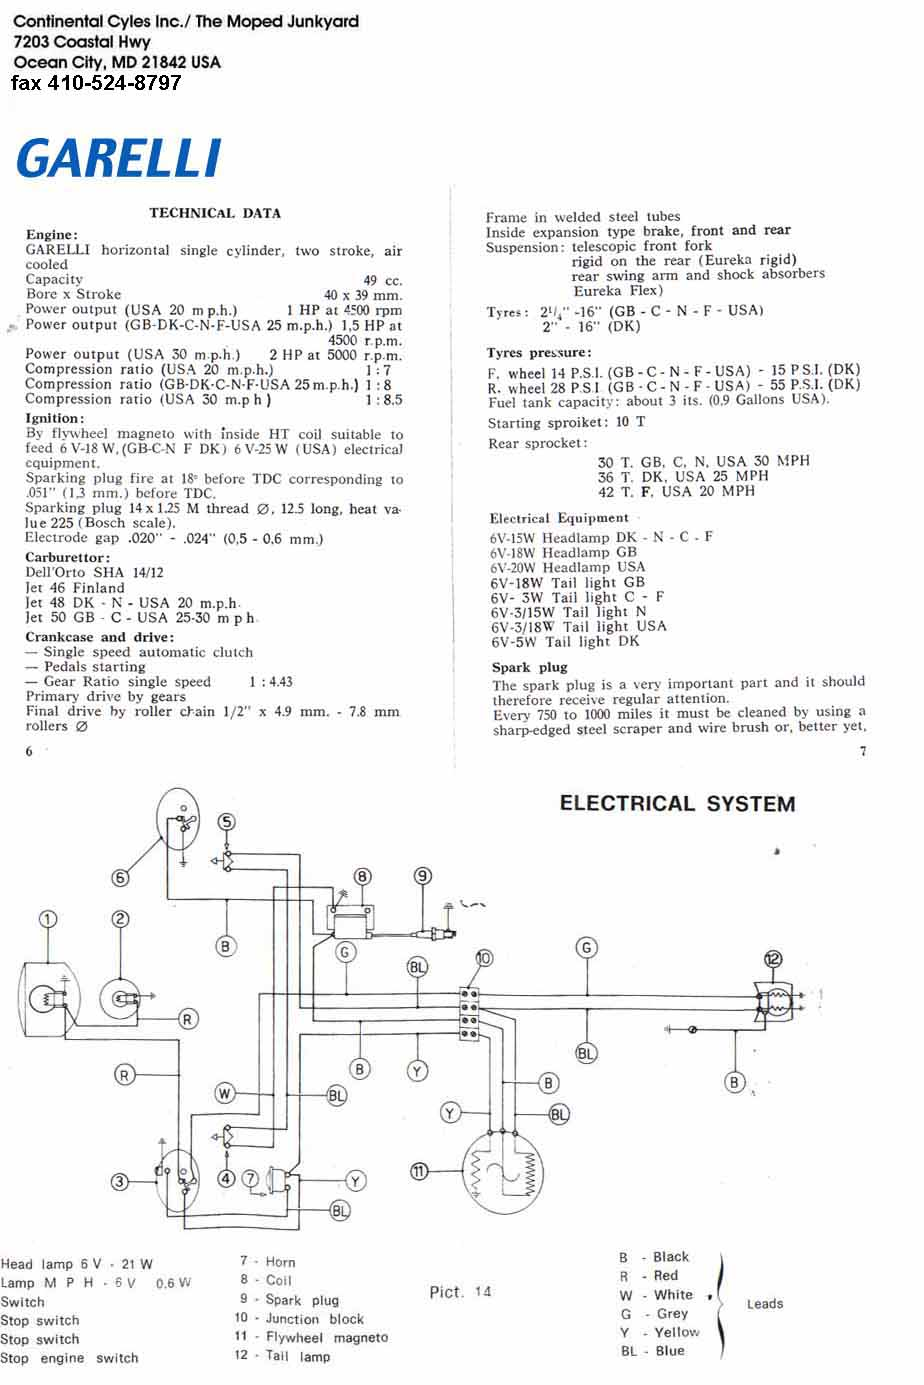 Garelli Wiring Diagram | Wiring Diagram on